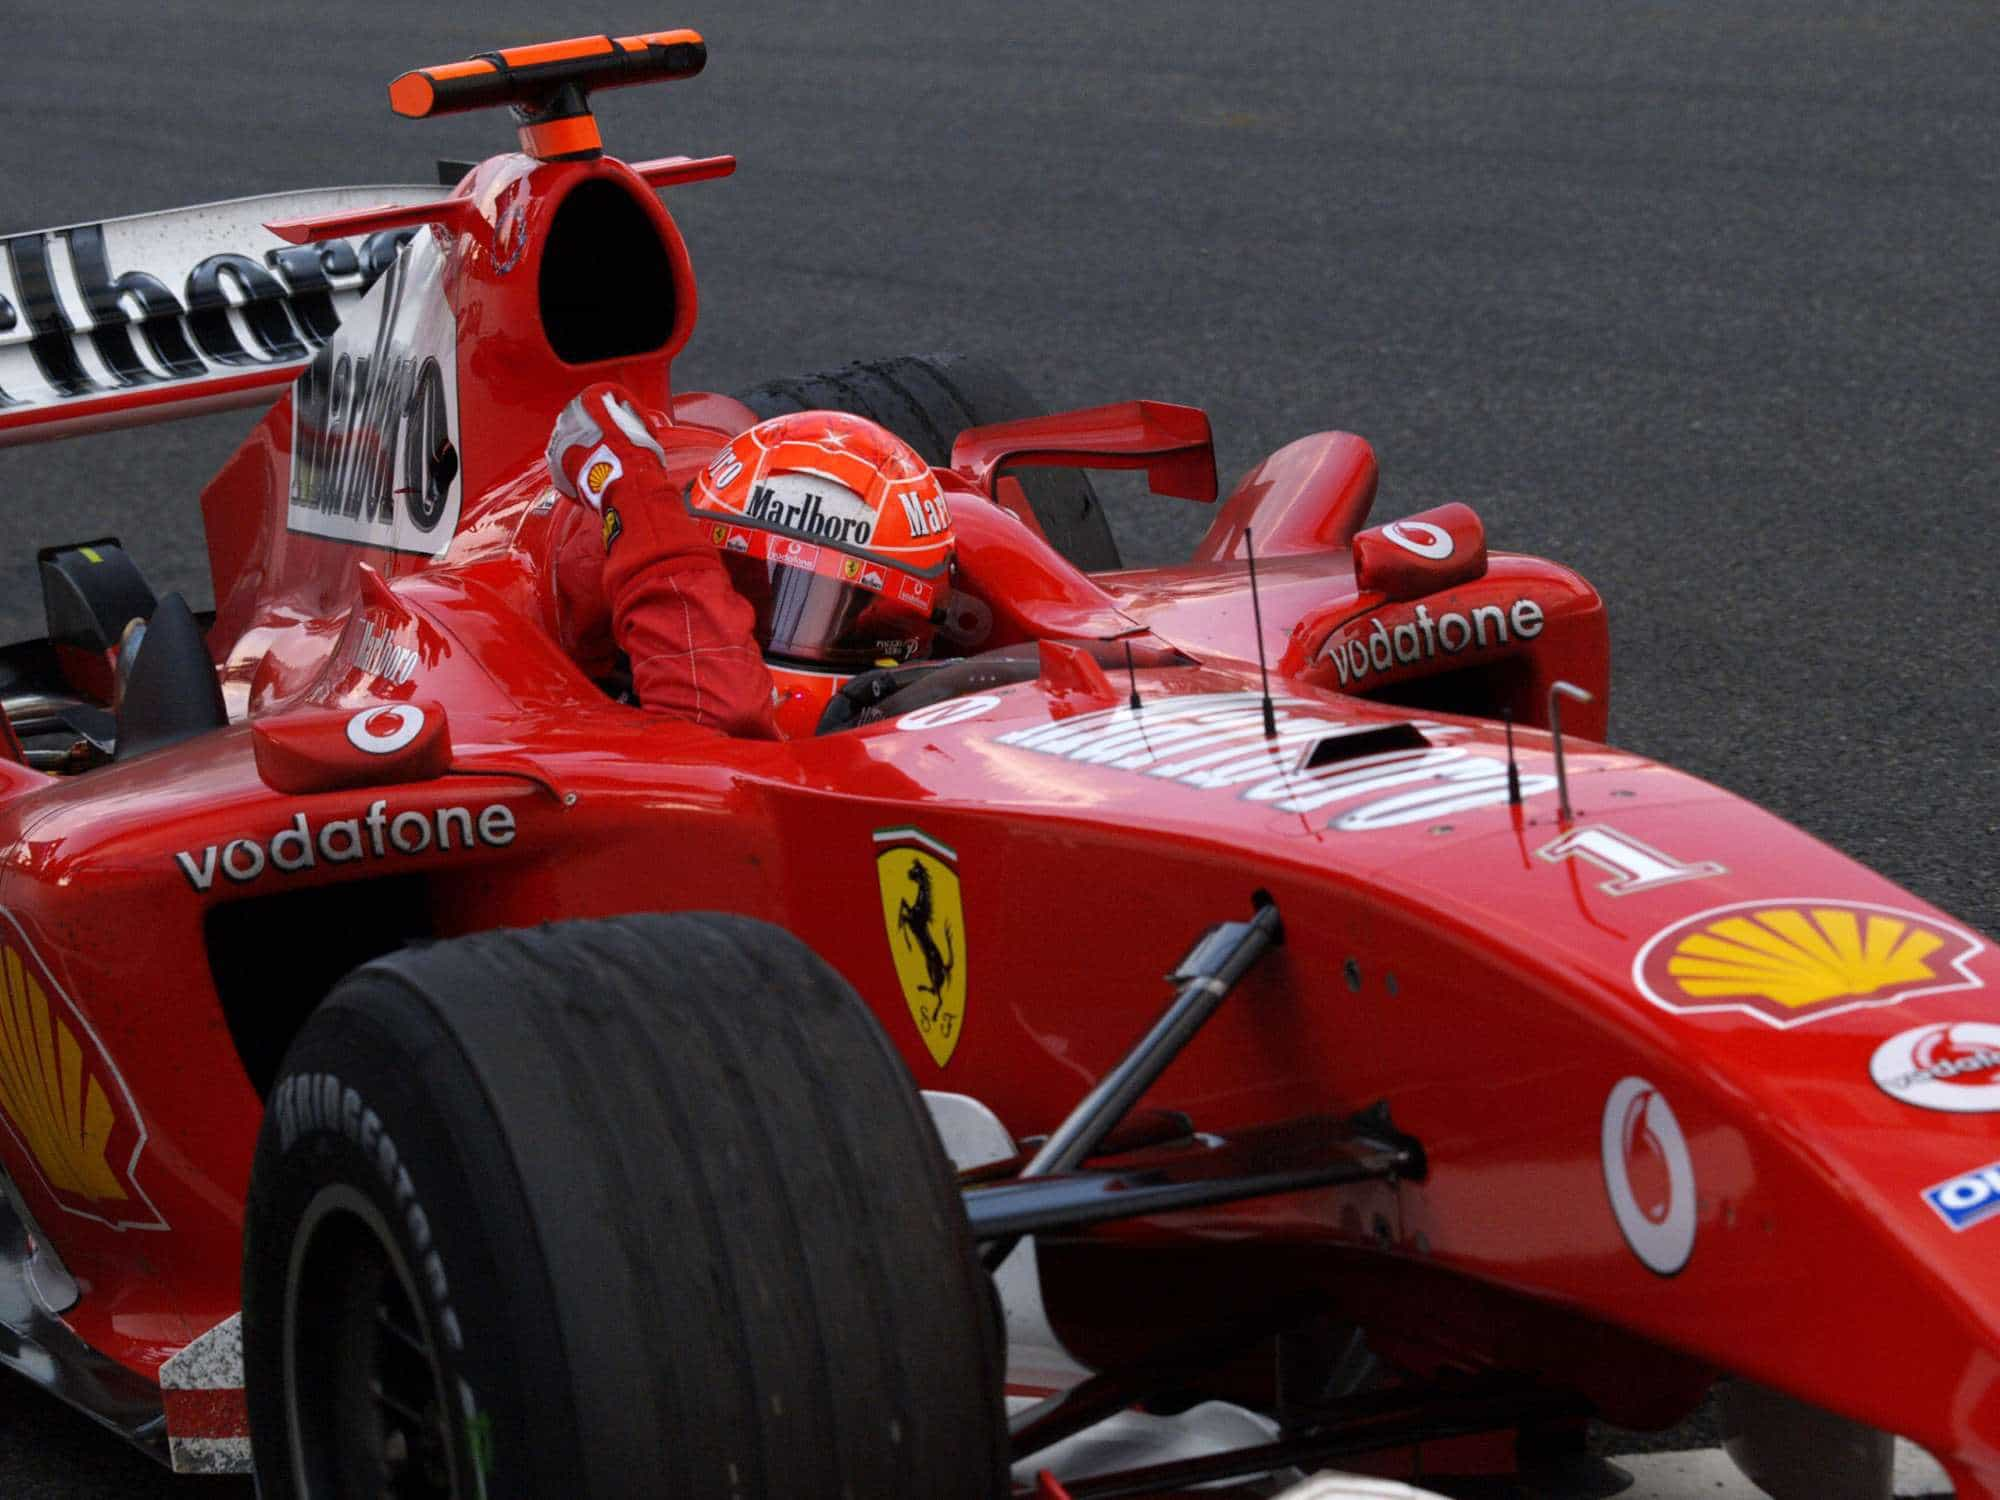 Michael-Schumacher-Ferrari-F2004-Japanese-GP-F1-2004-Photo-Ferrari